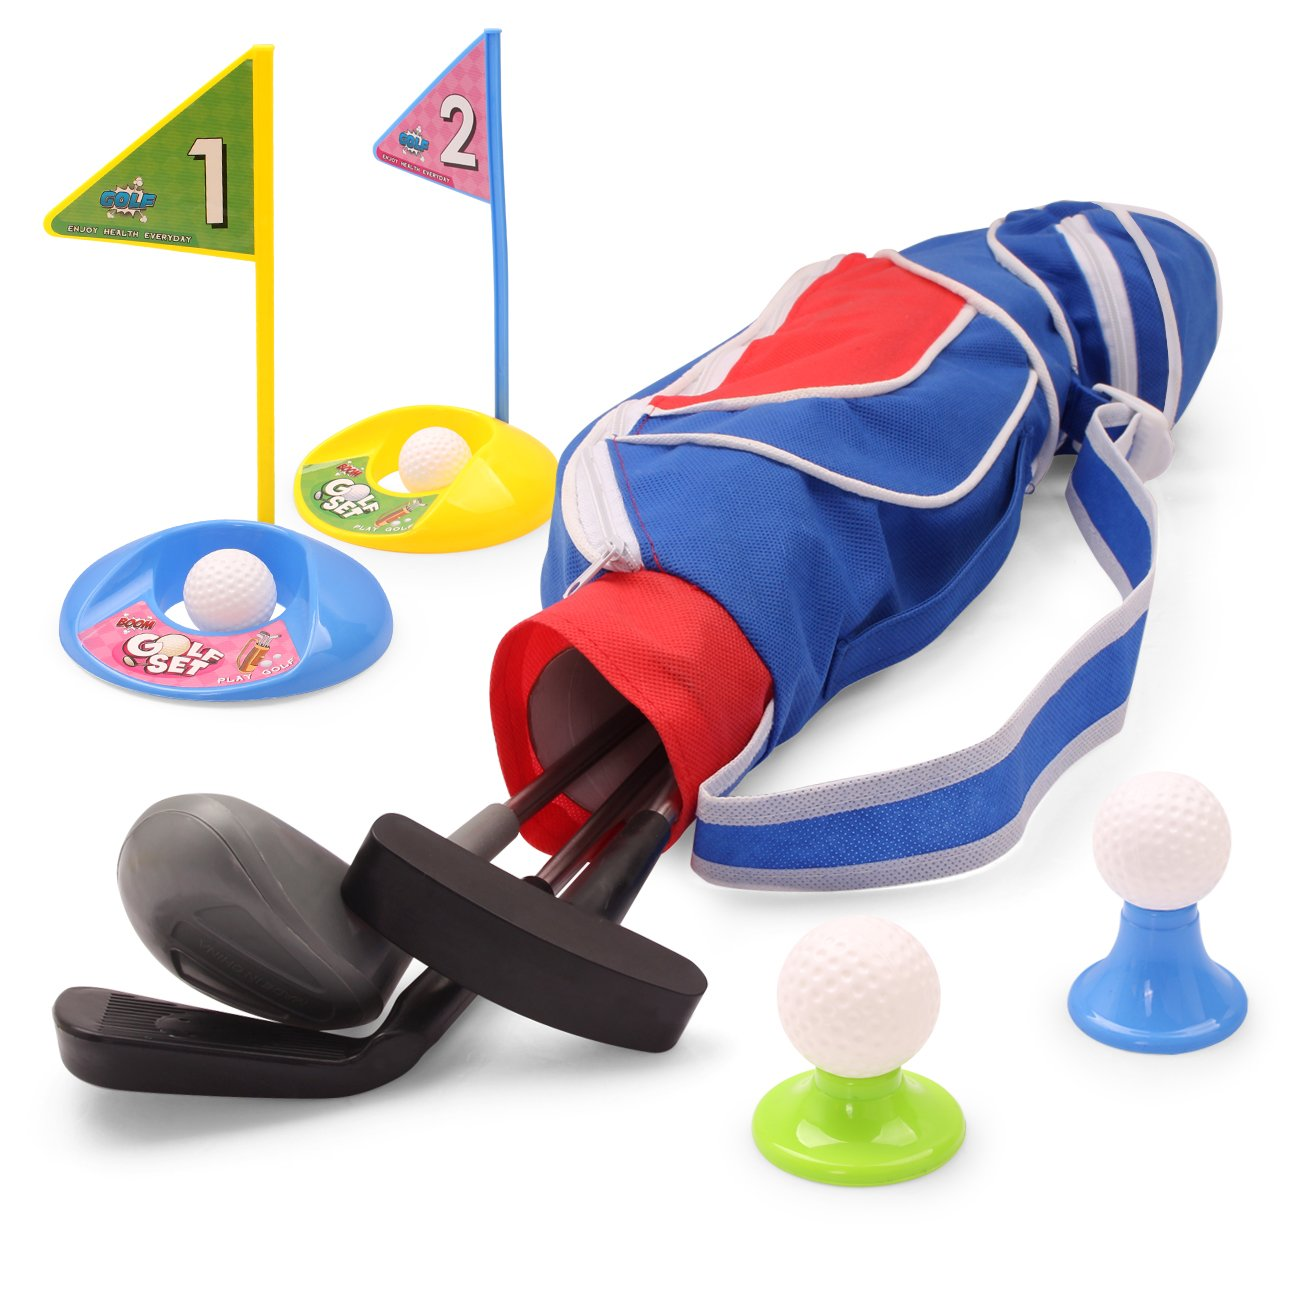 EXERCISE N PLAY Deluxe Happy Kids/Toddler Golf Clubs SetGrow-to-Pro Golfer 15 Piece Set